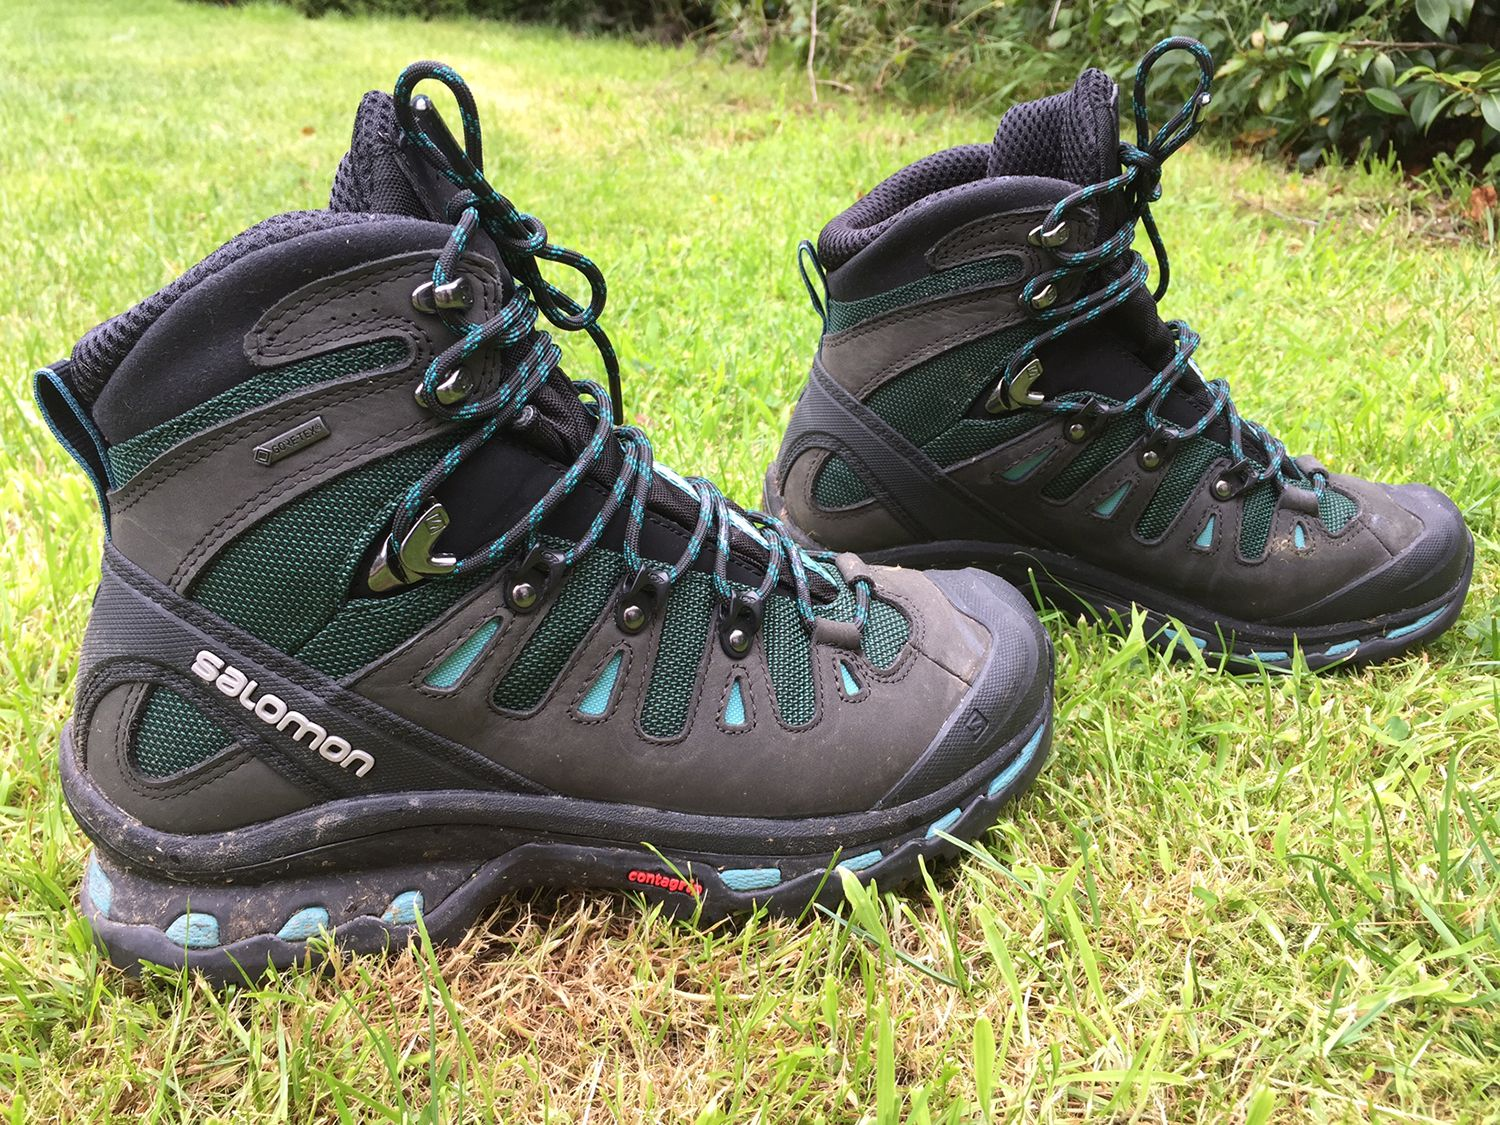 52784fe30c36 Salomon Shoes Quest 4D 2 GTX Womens Walking Boots On sale for 119 at time  of writing from Millet SportsFind Out more Features Nubuck leather for  longer wear ...